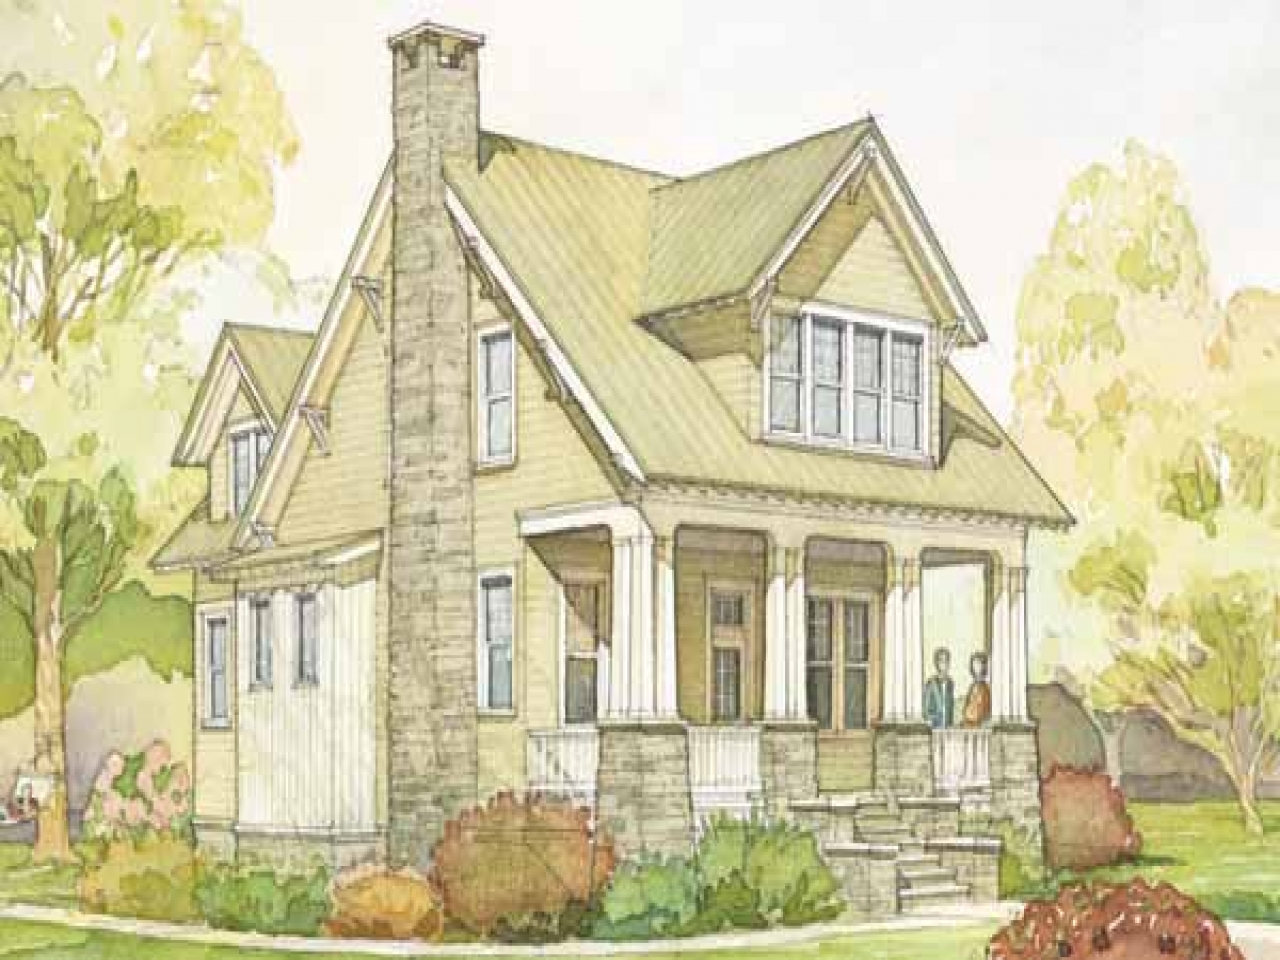 Southern living cottage style house plans low country for Southern country house plans